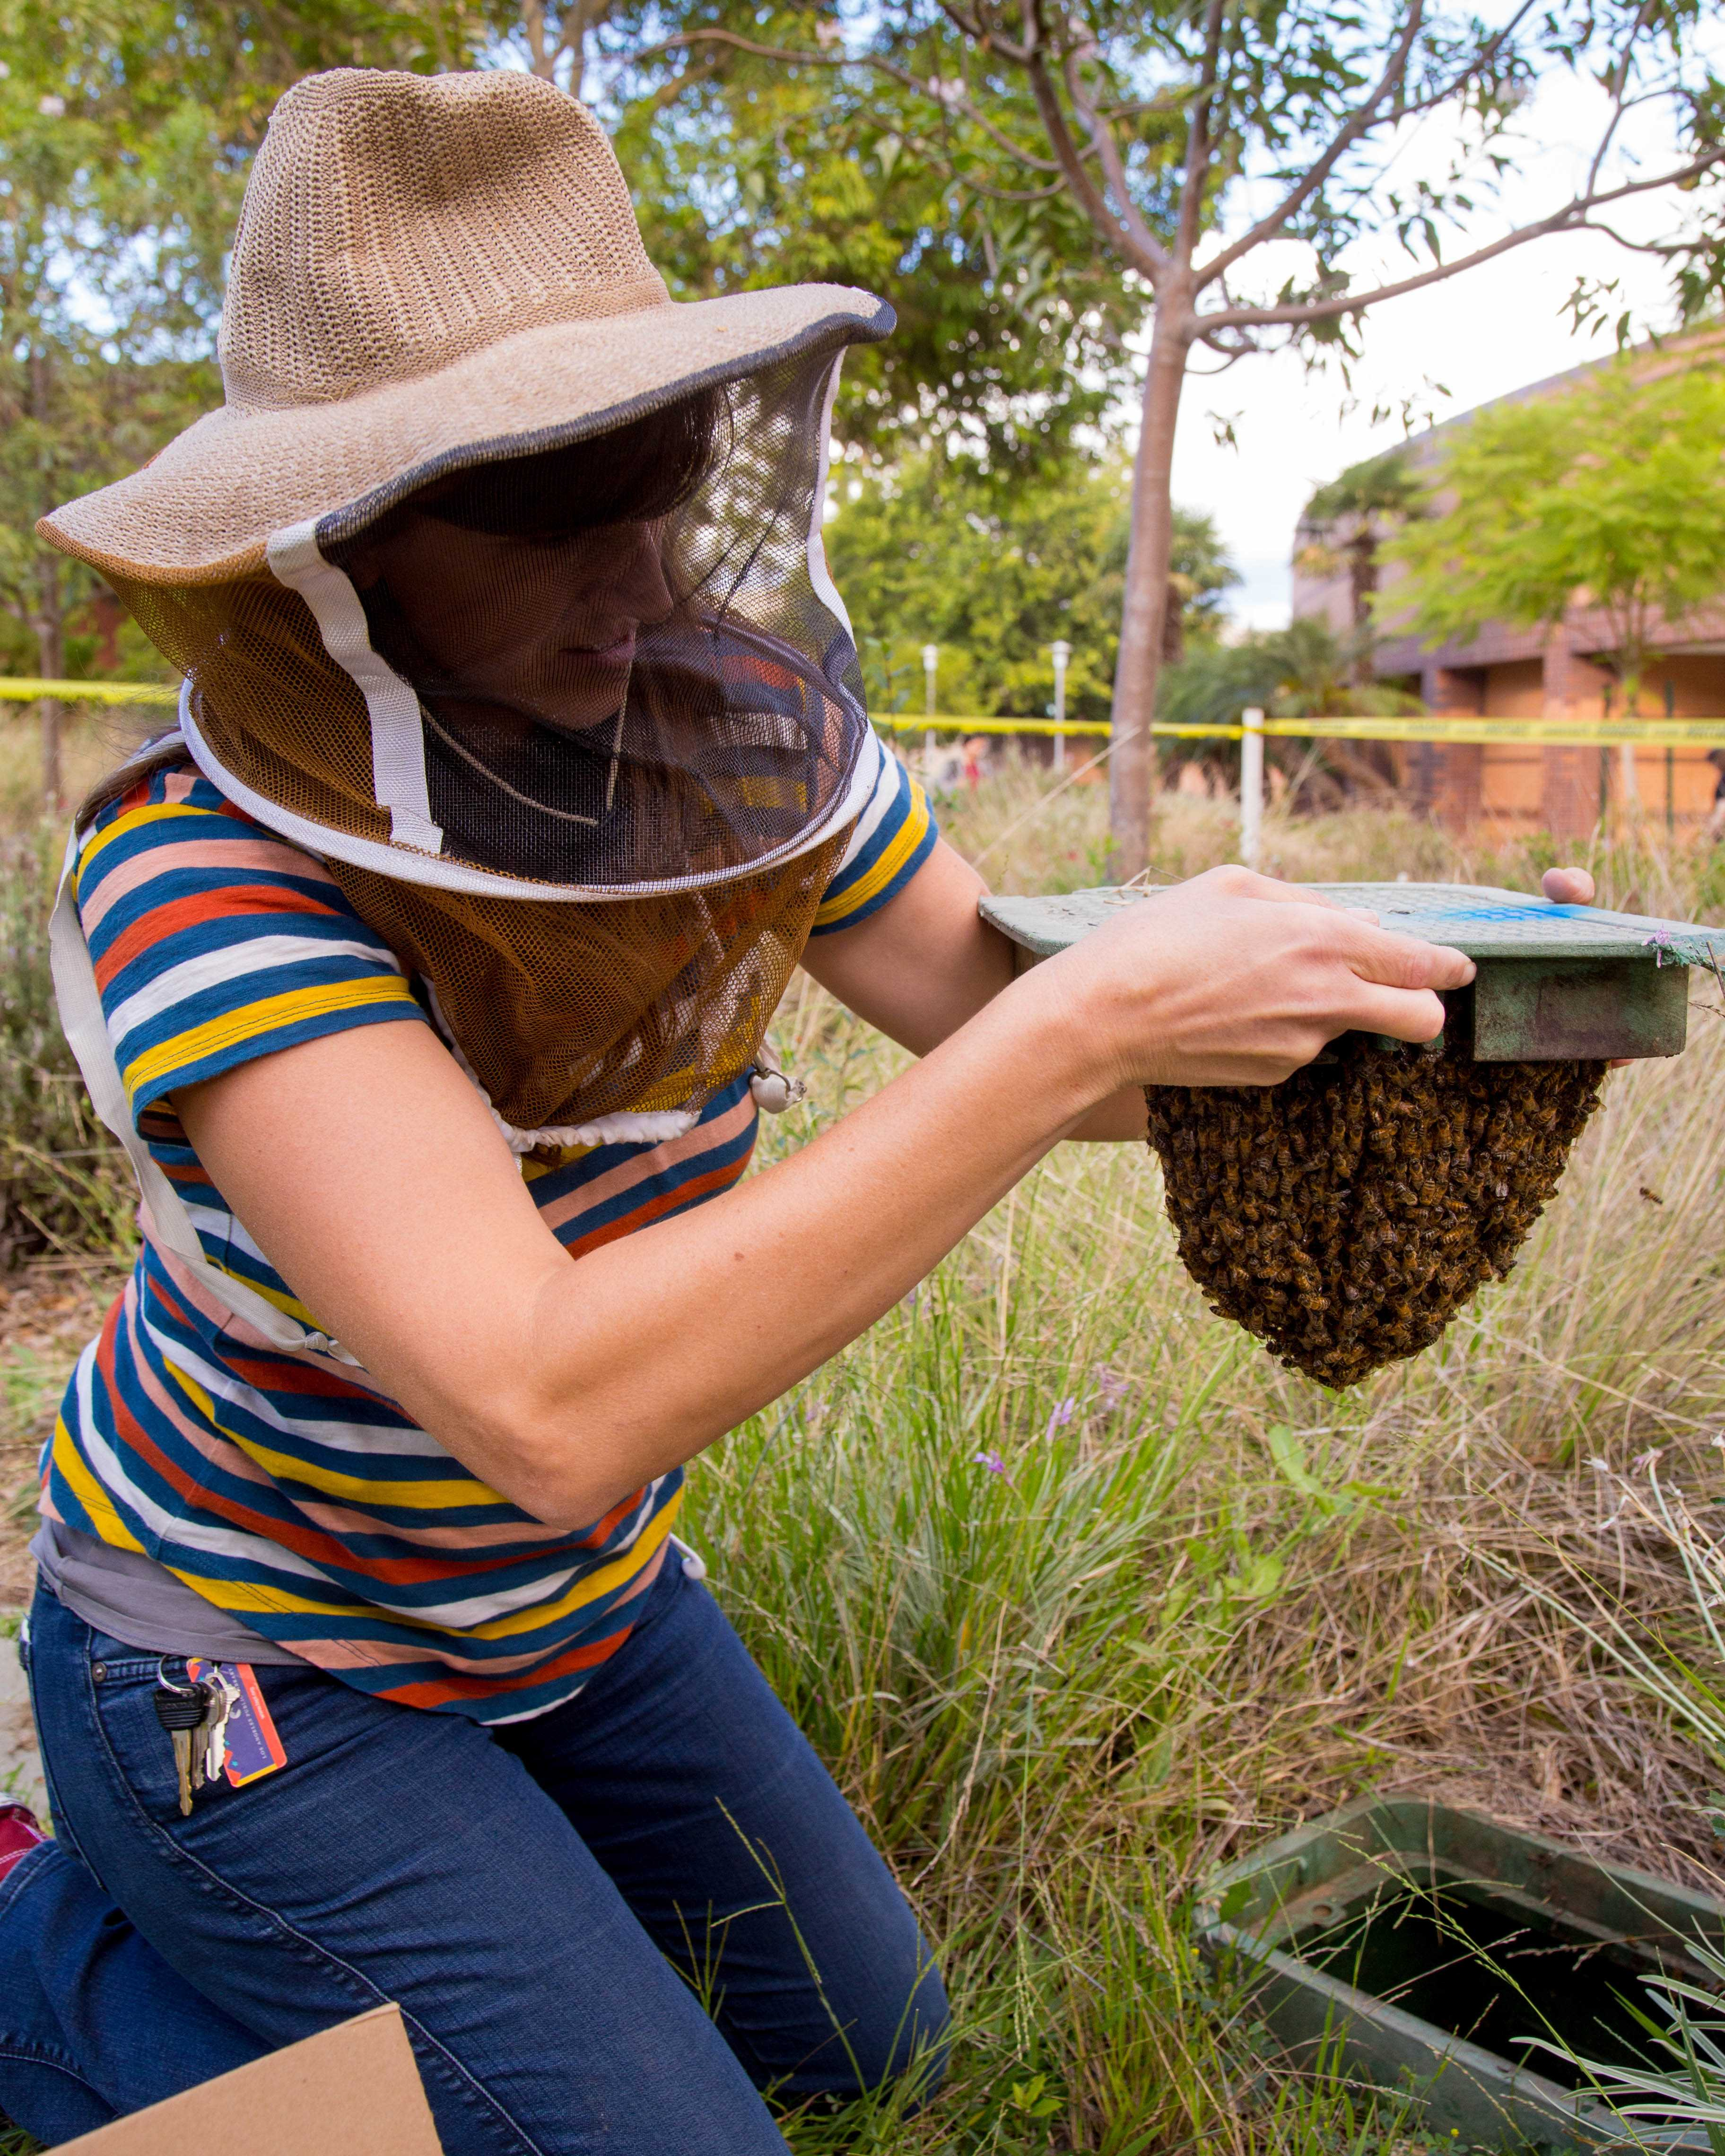 Professor Mackelprang removes a feral beehive from an irrigation water meter on Thursday, Oct. 4, 2018 at CSUN in Northridge, Calif. Mackelprang took the hive home right before they were expected to leave, in an attempt to find a more suitable location. Photo credit: John Hernandez